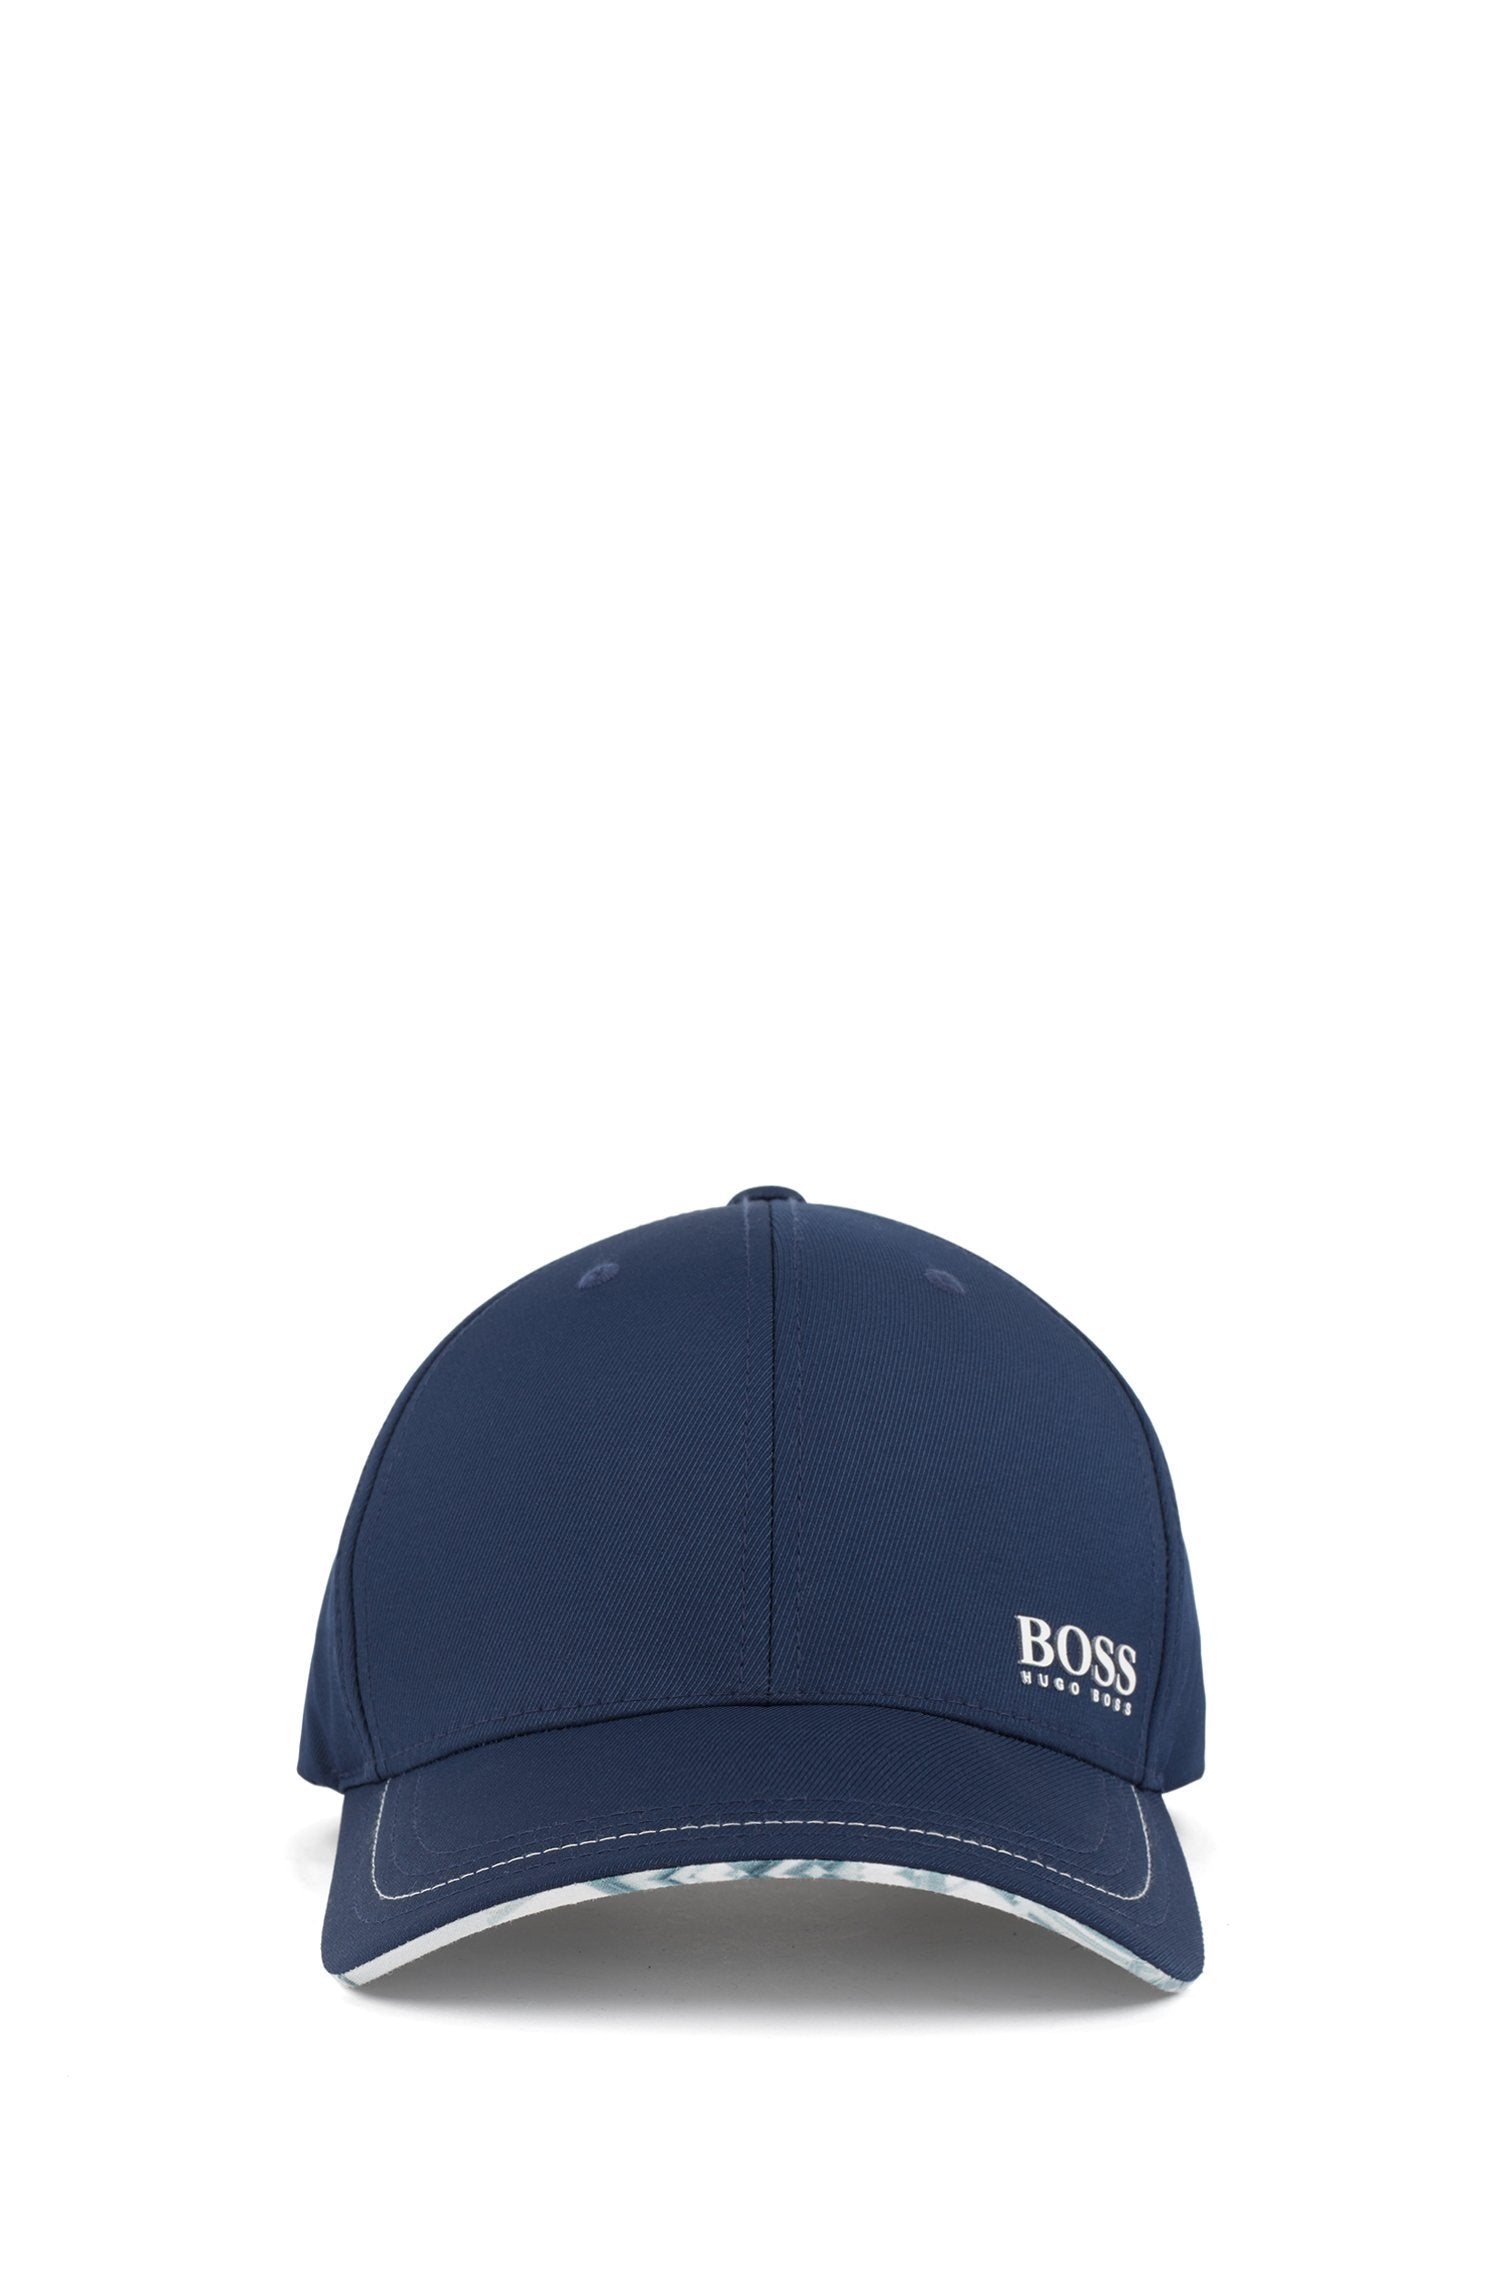 HUGO BOSS Lightweight cap in stretch twill with collection pattern 50410365-410